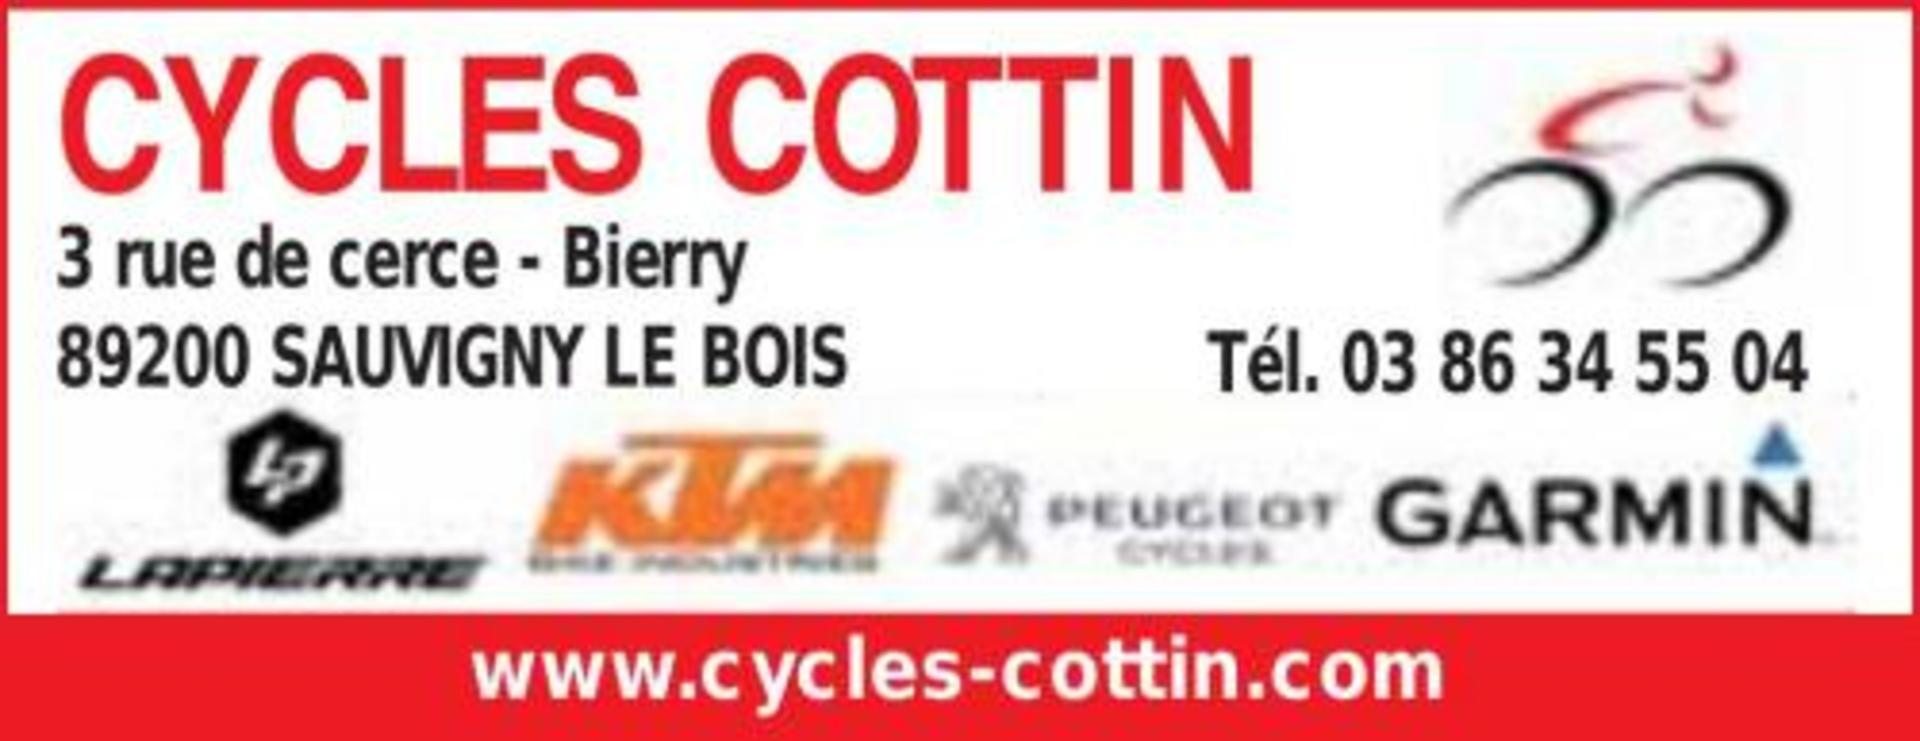 Cycles cottin